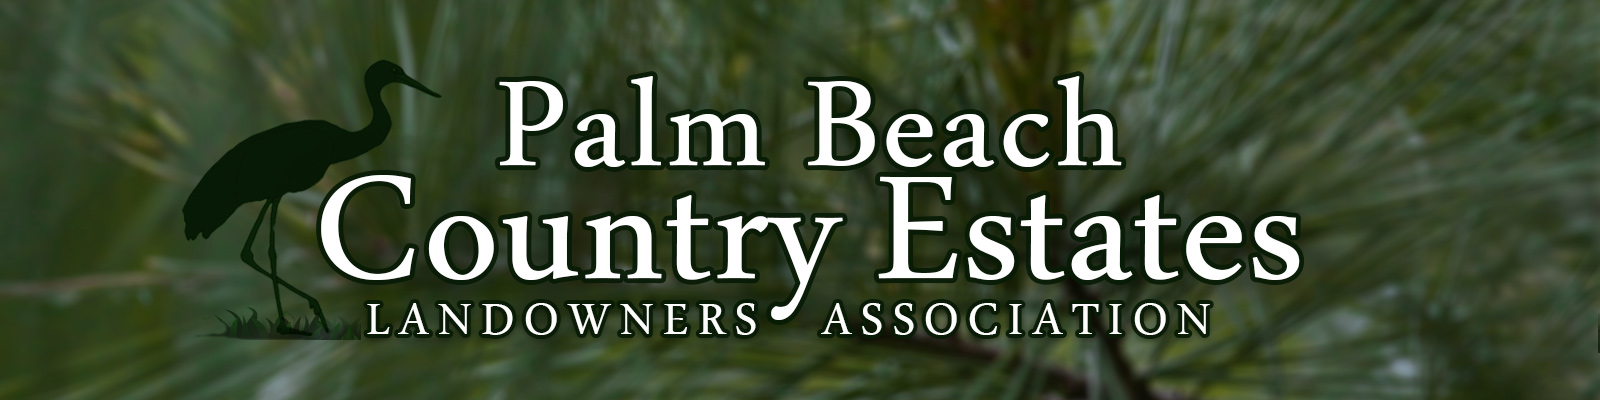 Palm Beach Country Estates Landowners Association